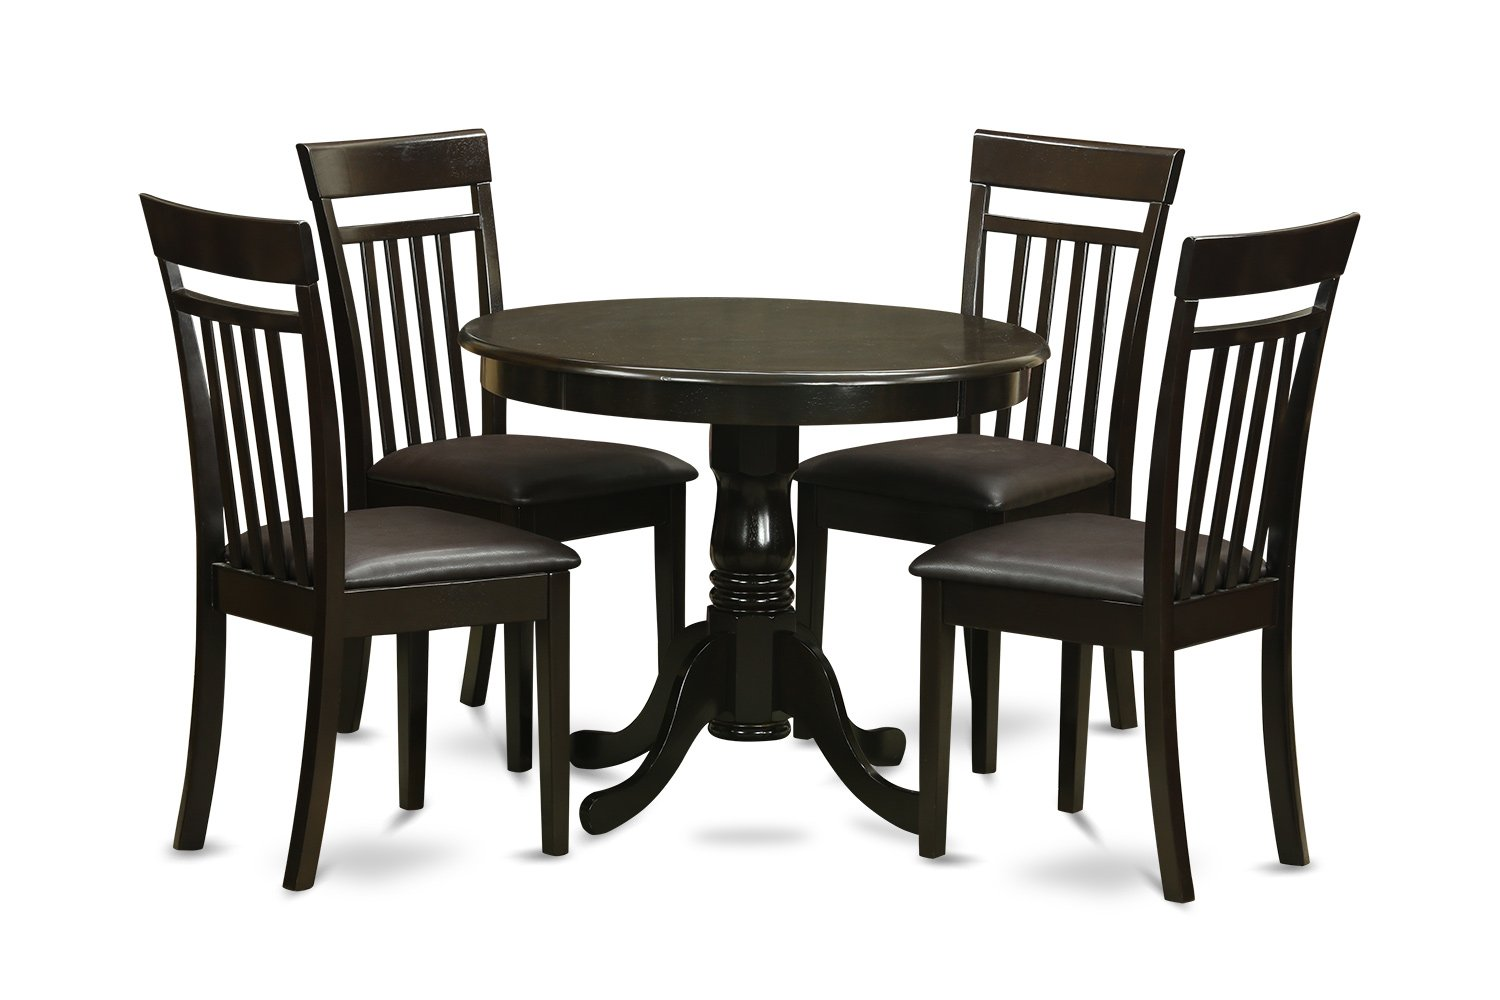 ANCA5-CAP-LC 5 PC small Kitchen Table and Chairs set-round Table and 4 Chairs for Dining room